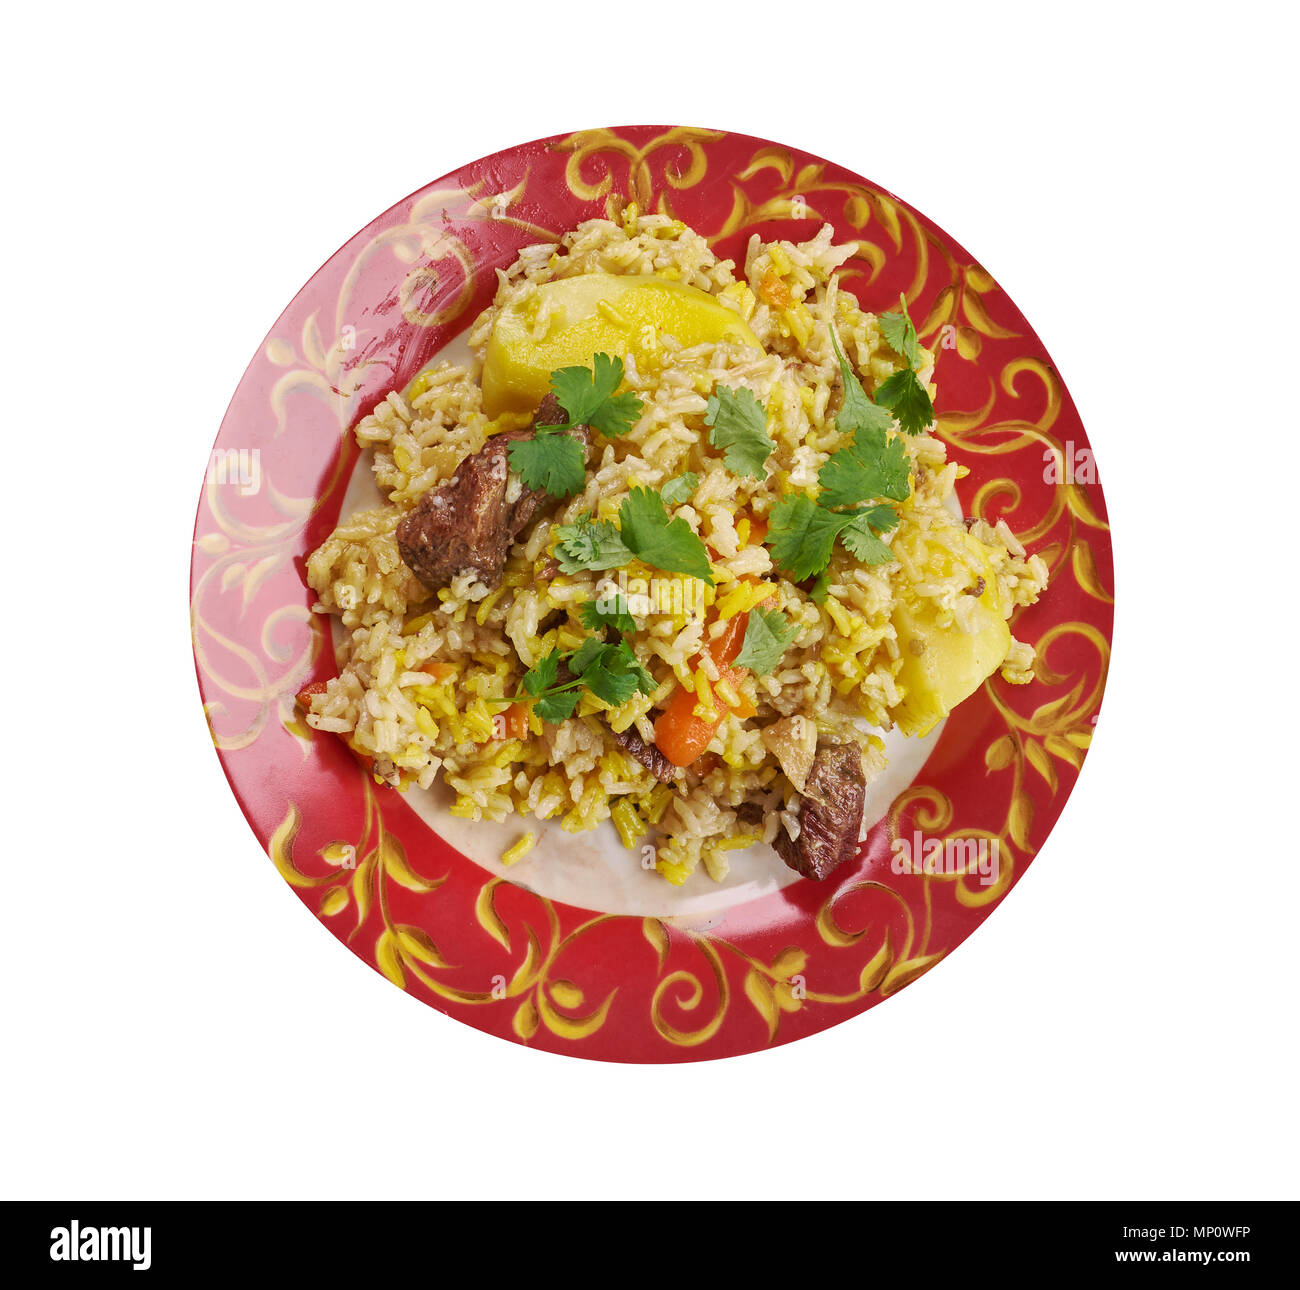 Surbiyaan - or zurbiyan is a type of Biryani that is popular in Yemen, other parts of the Arabian Peninsula Stock Photo